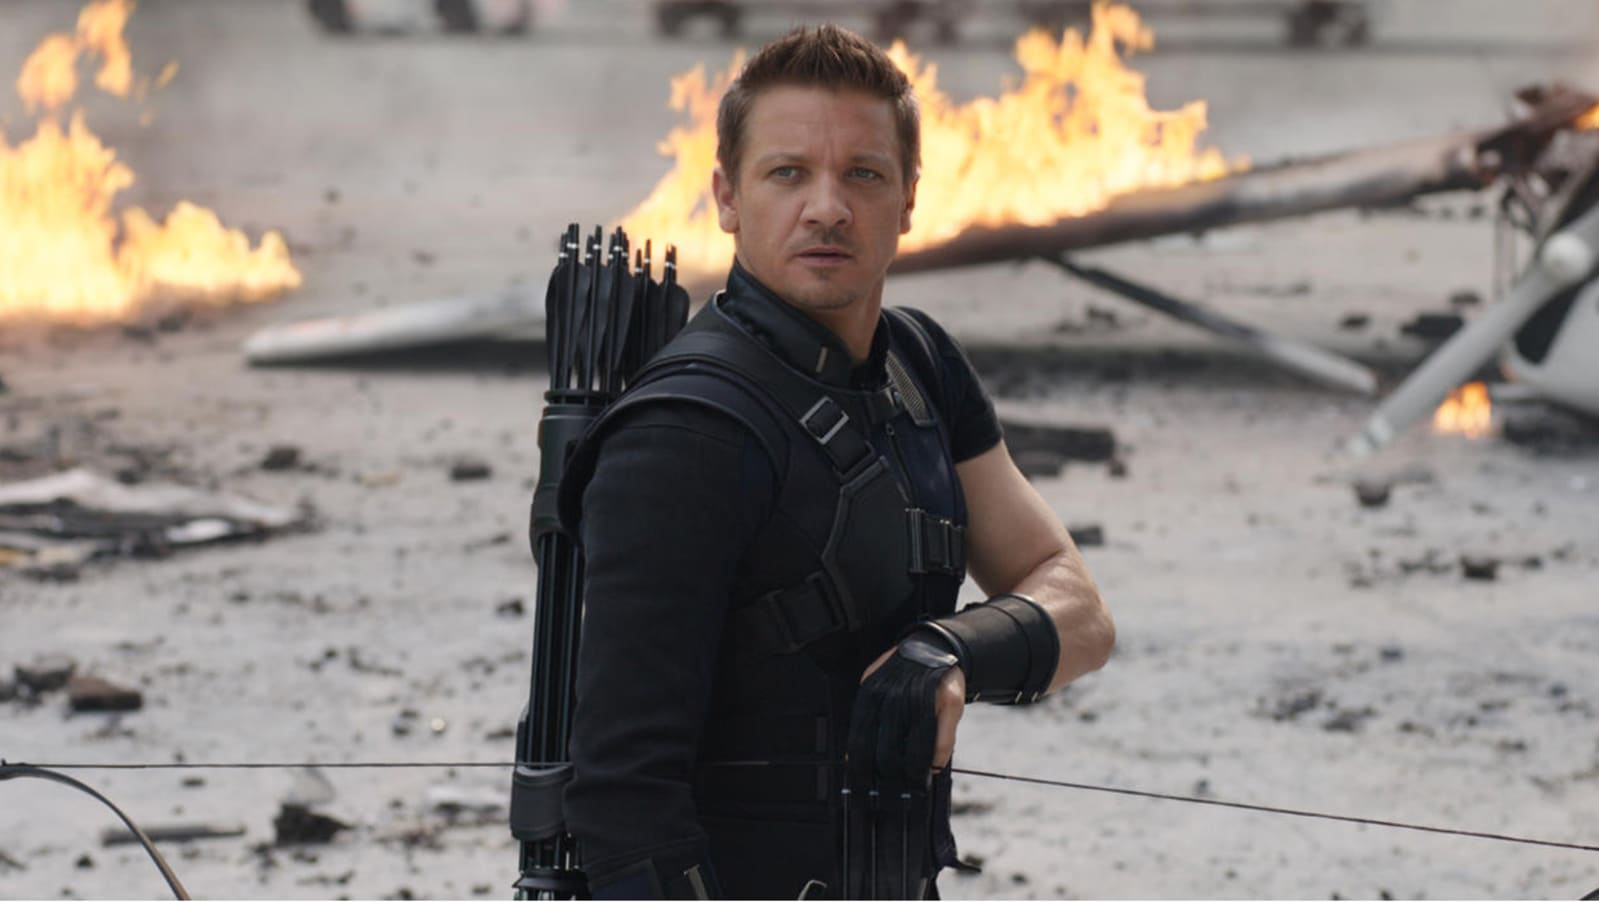 Hawkeye is the latest Avenger to reportedly get a Disney+